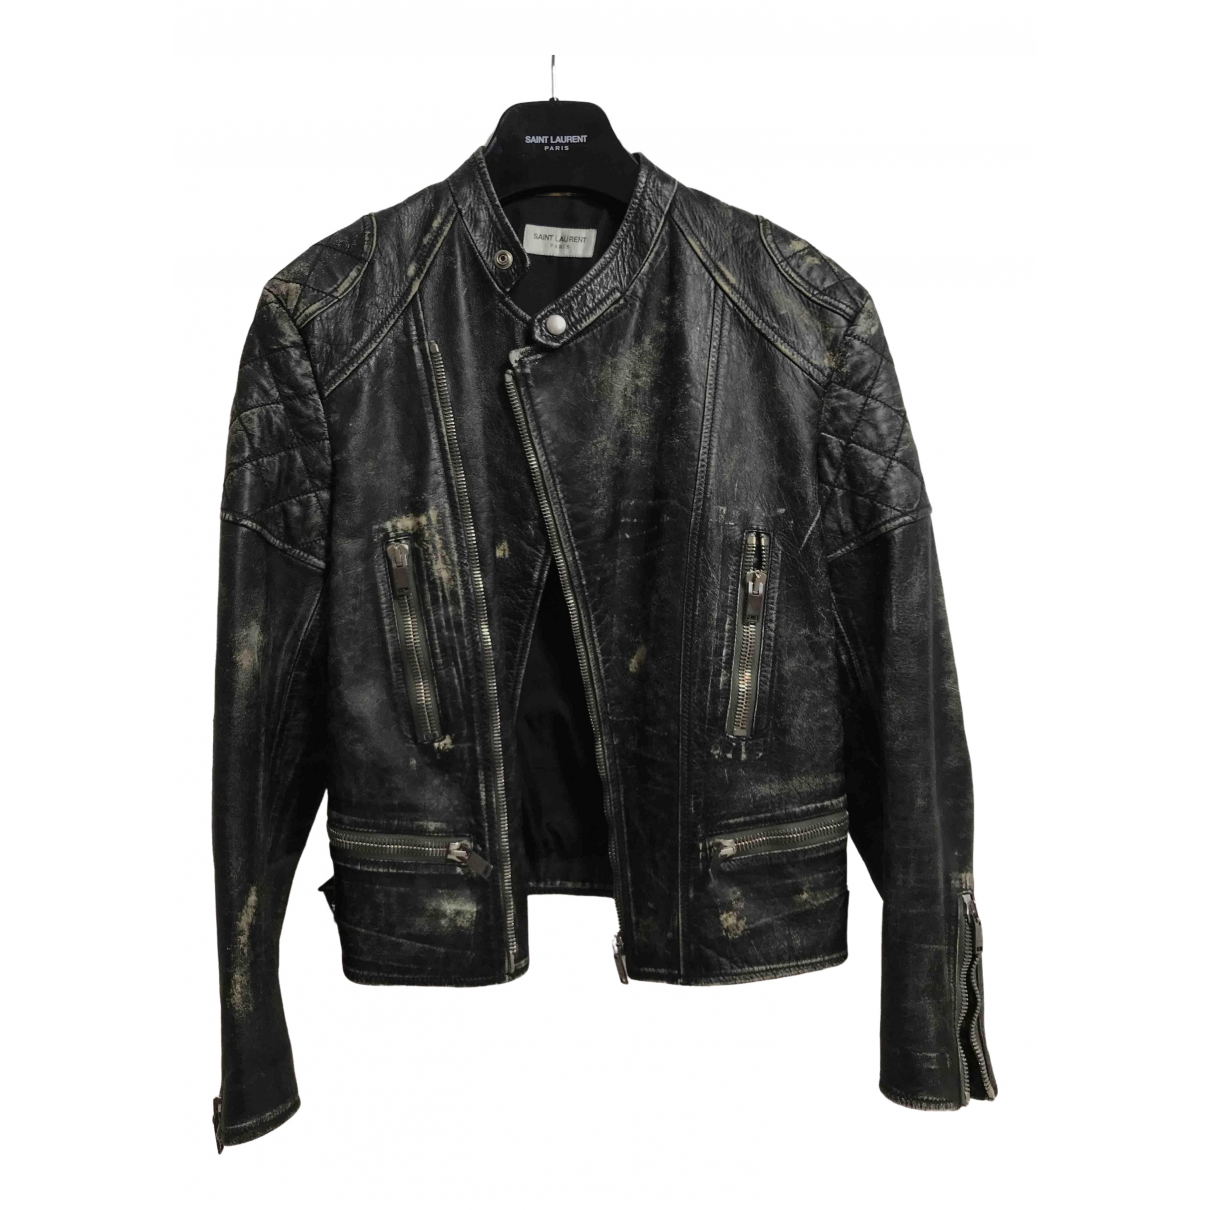 Saint Laurent \N Black Leather jacket  for Men M International